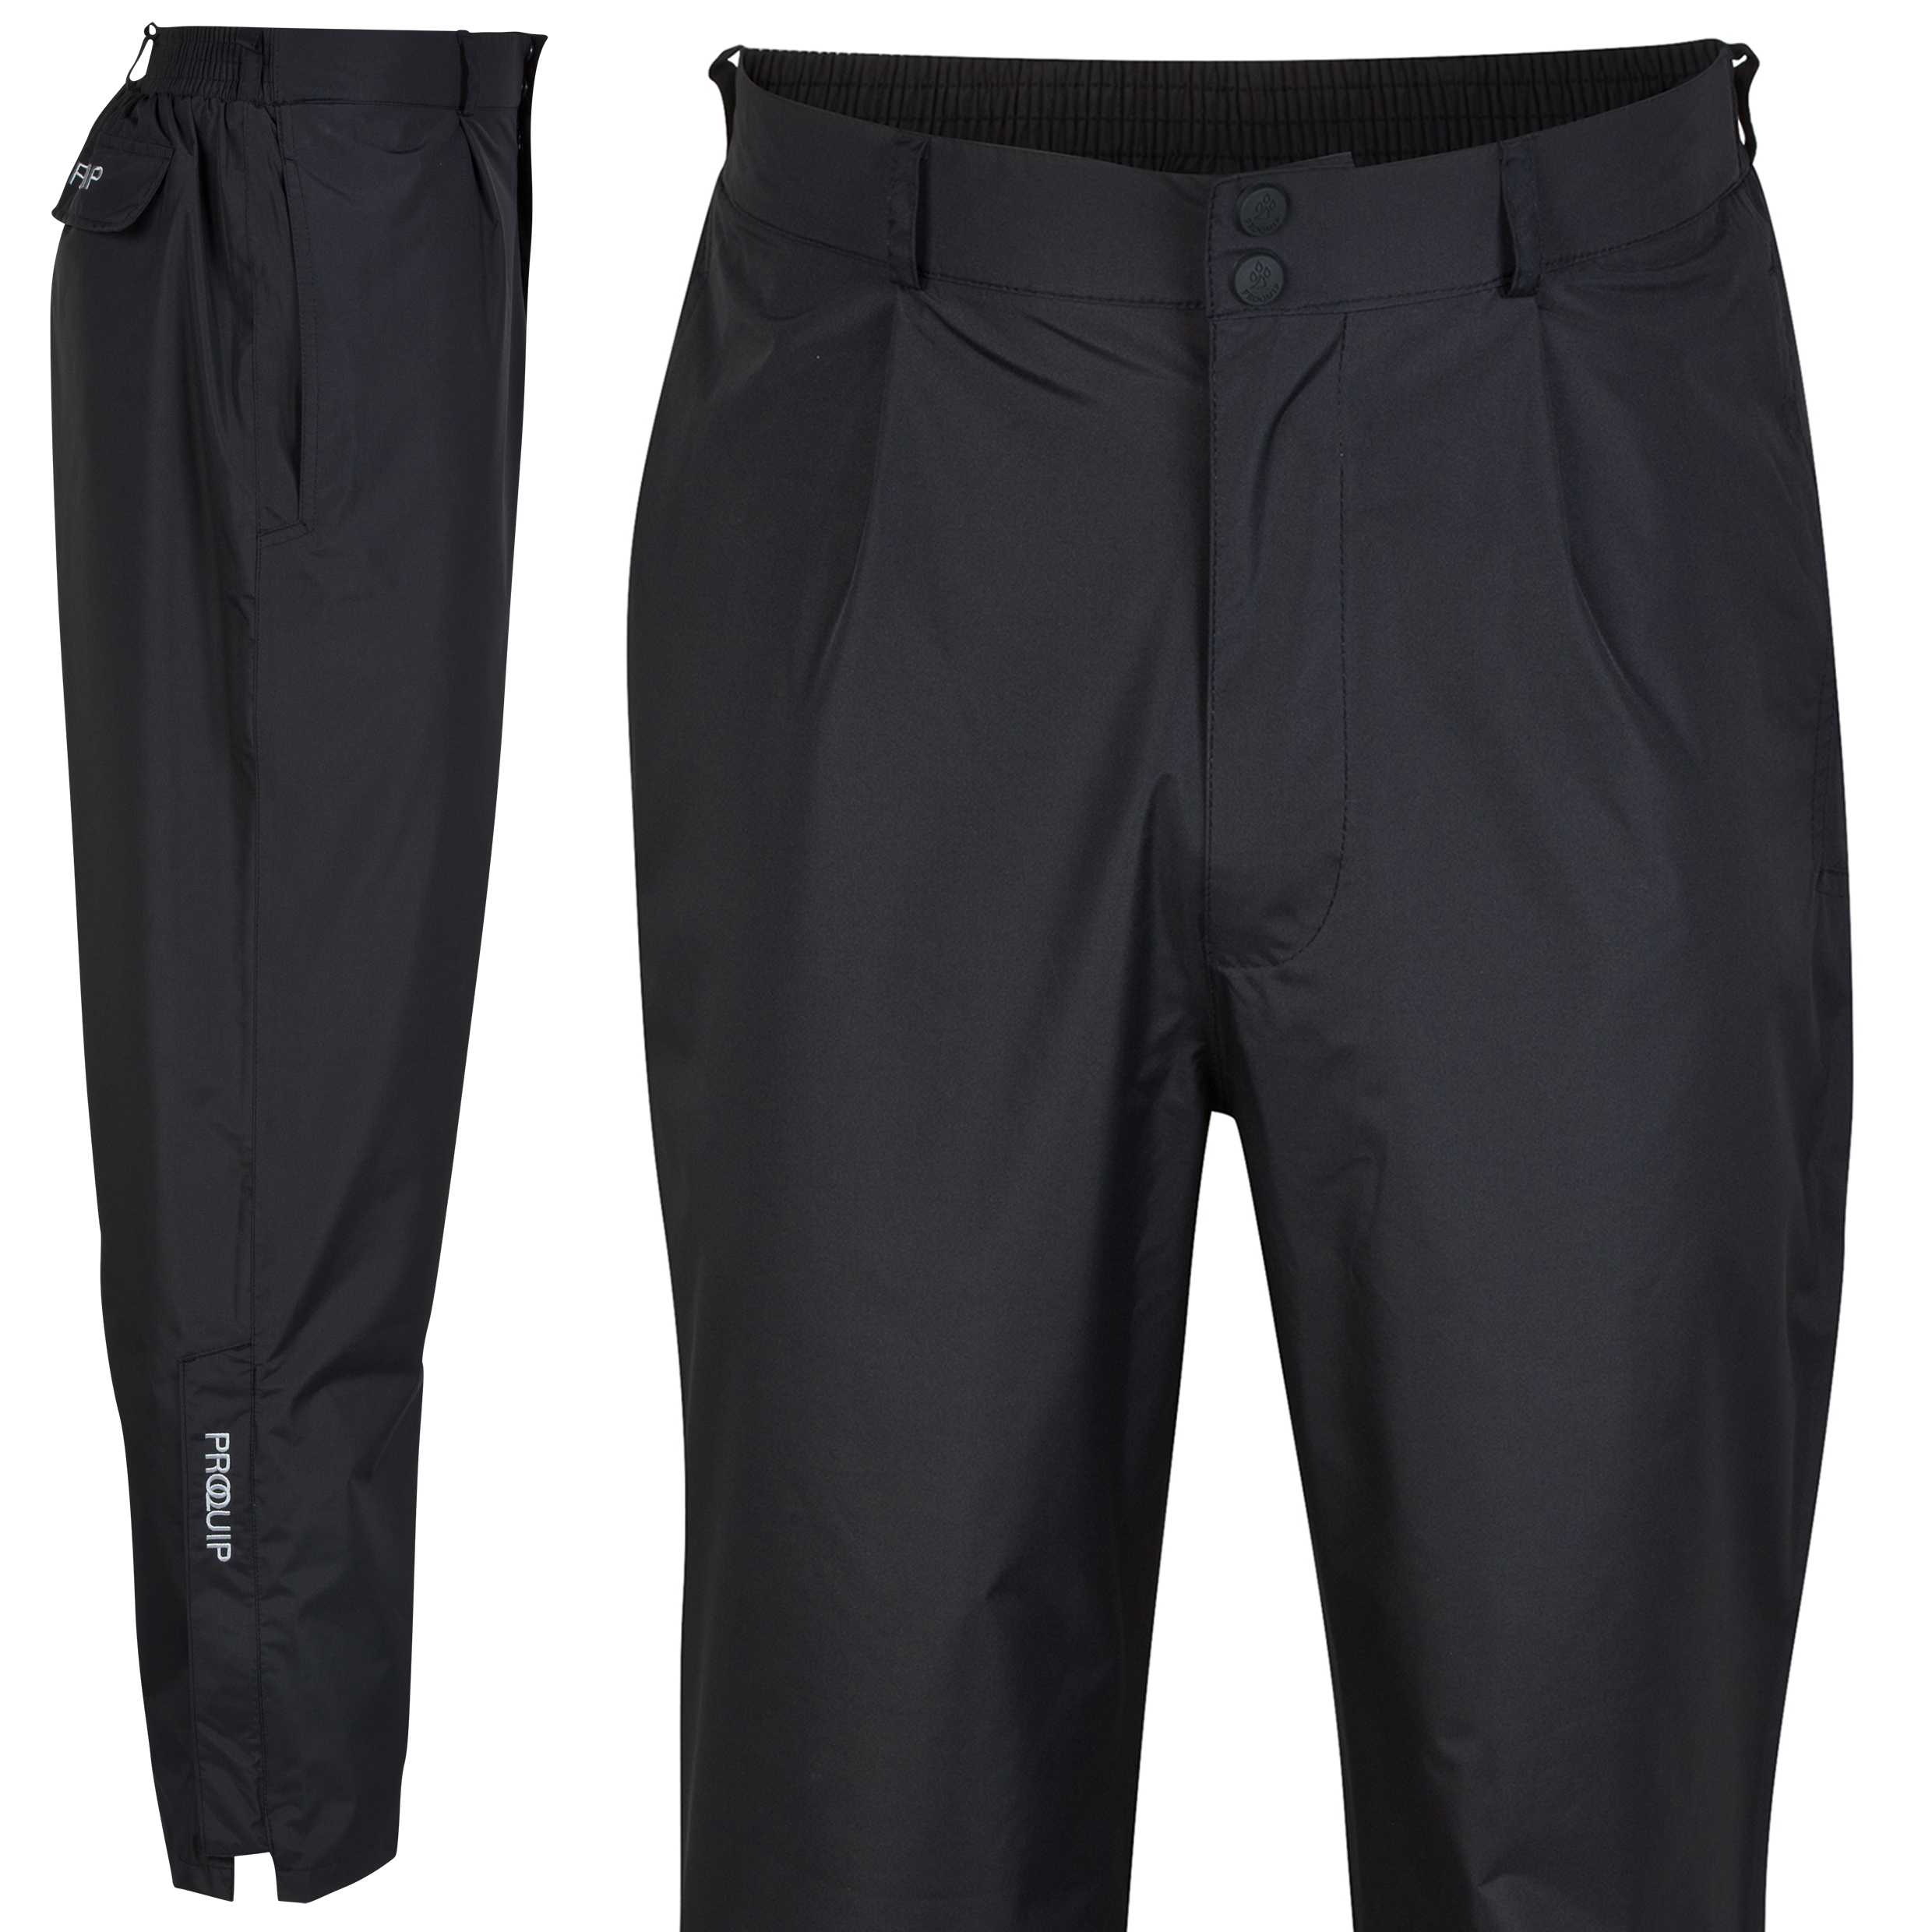 The 2014 Ryder Cup Aquastorm Waterproof Trouser 29 Inch Leg Black